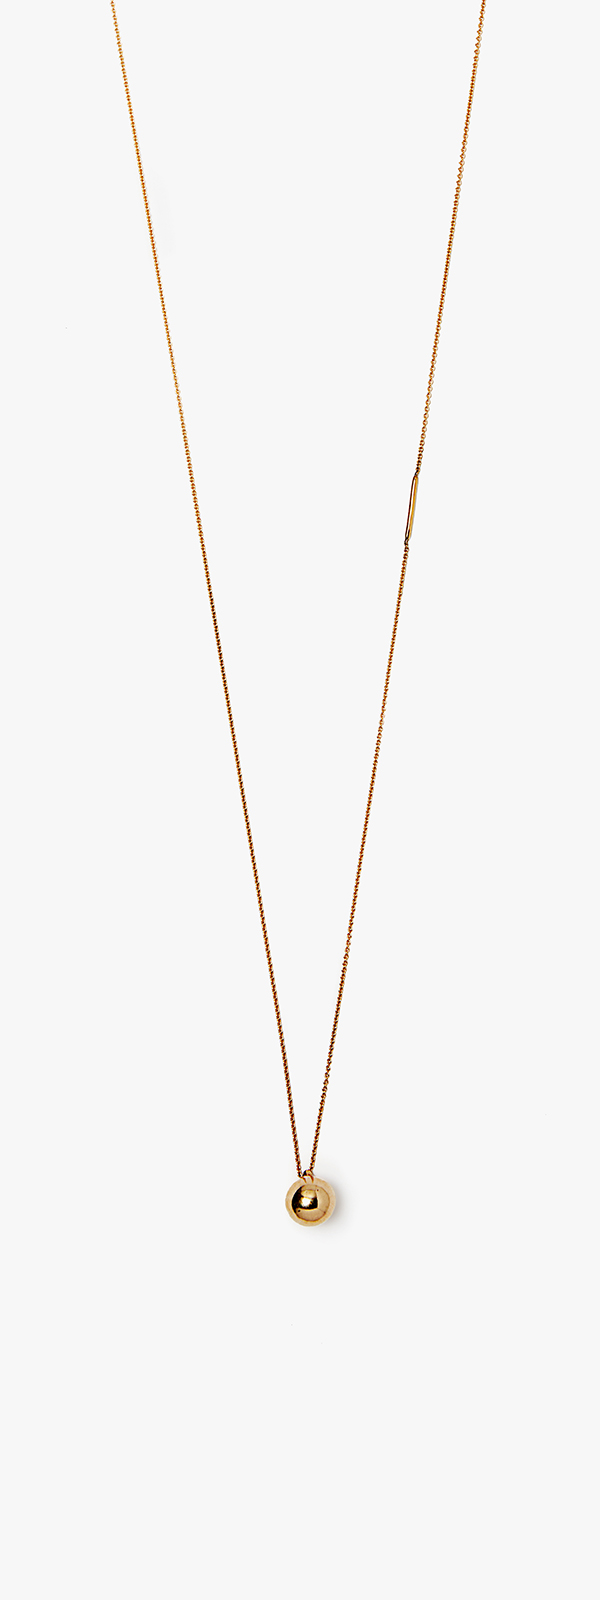 Image of 18k Solid Necklace 090